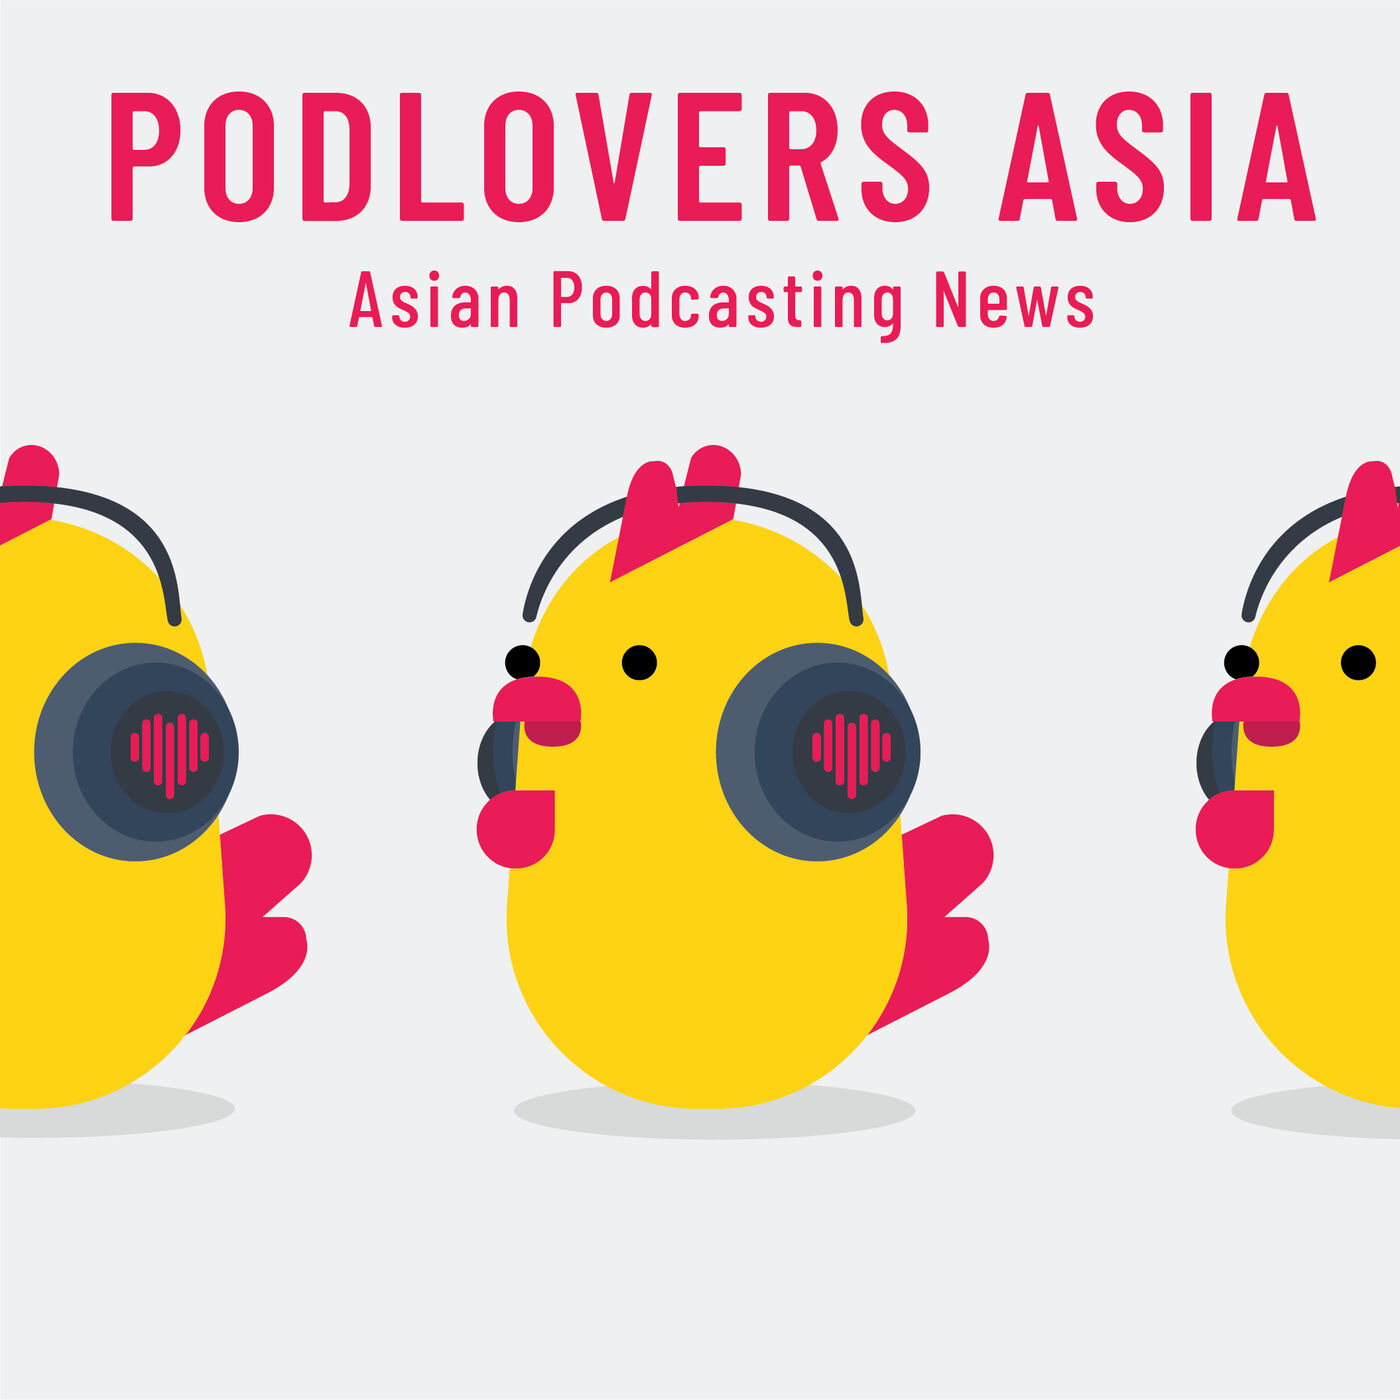 Podcast Engineers' Dave Visaya talks podcast editing as a business, The Big Picture, and The Philippines Podcasting Scene